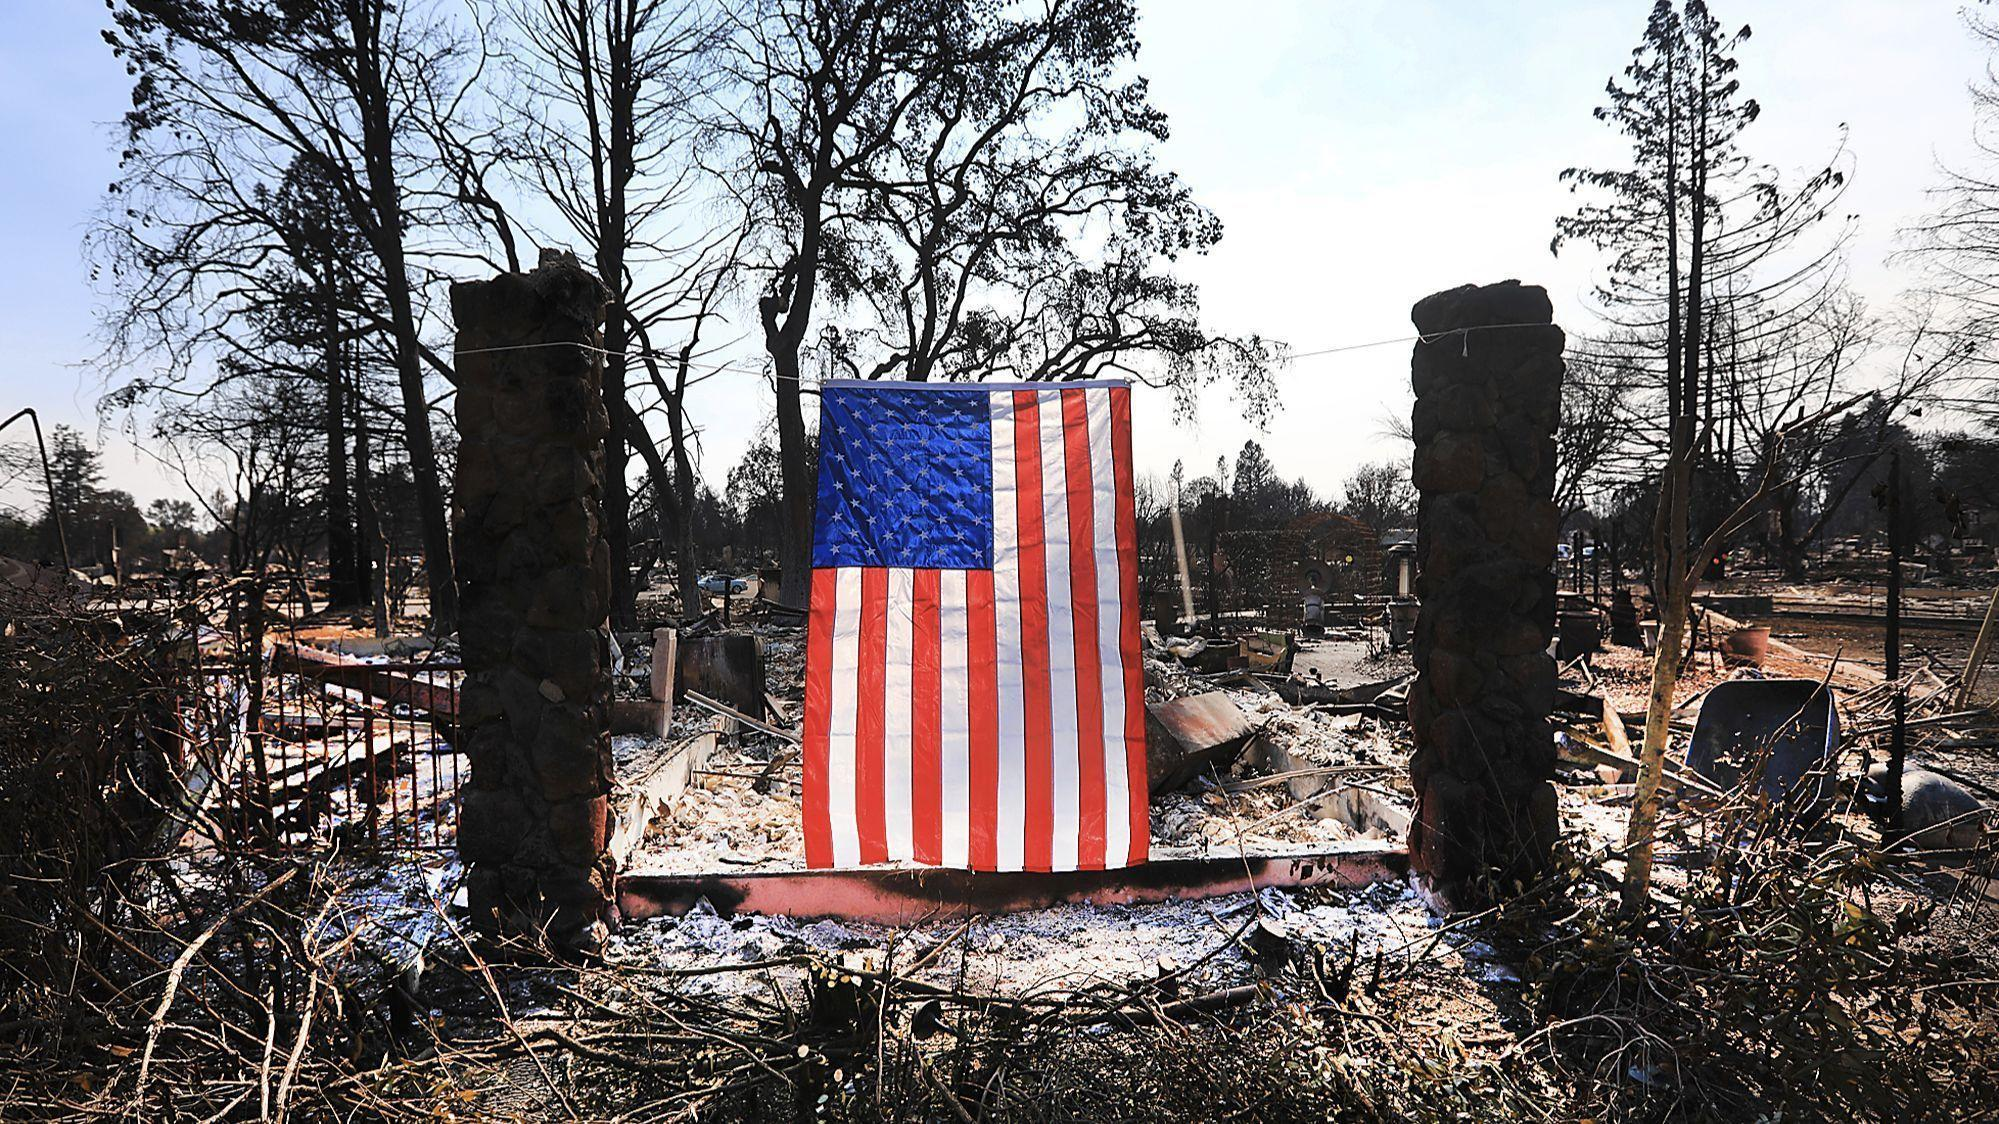 Buildings lost in wine country wildfires rises to 8,700 ...